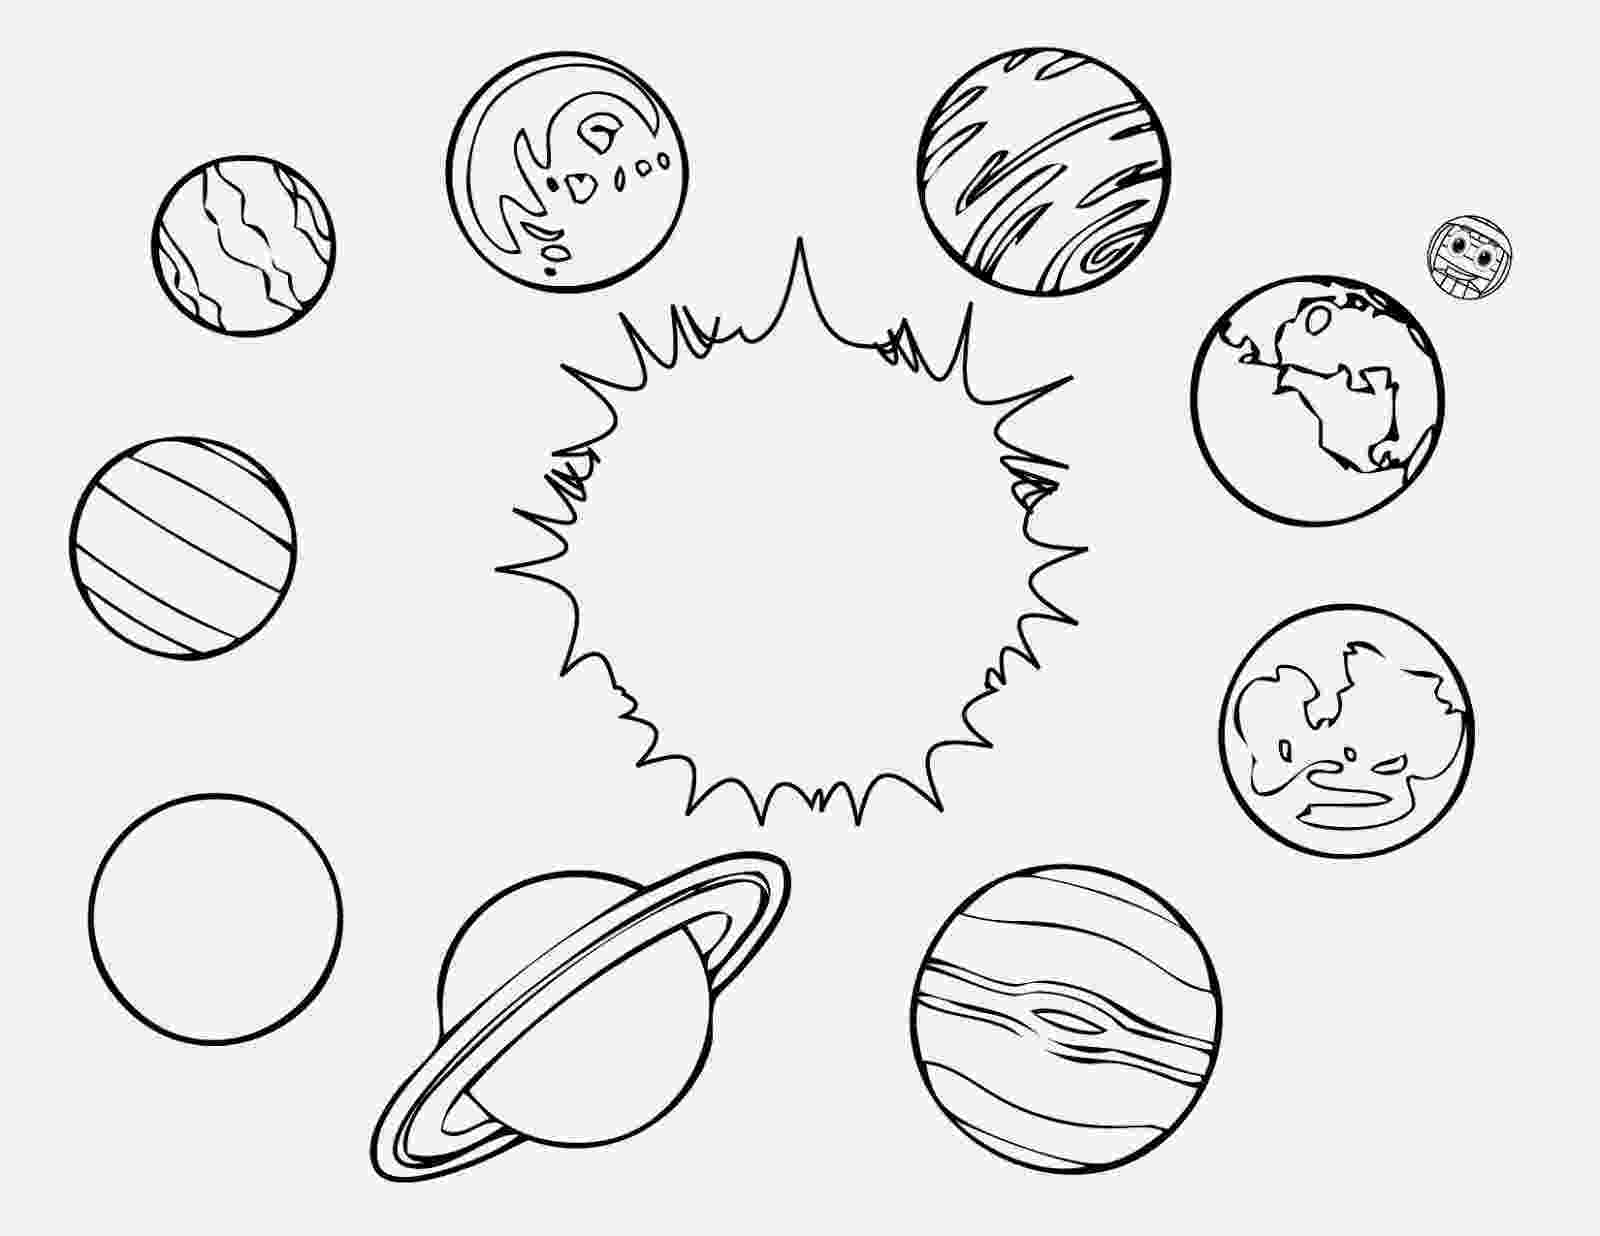 planet colouring sheets free printable solar system coloring pages for kids planet colouring sheets